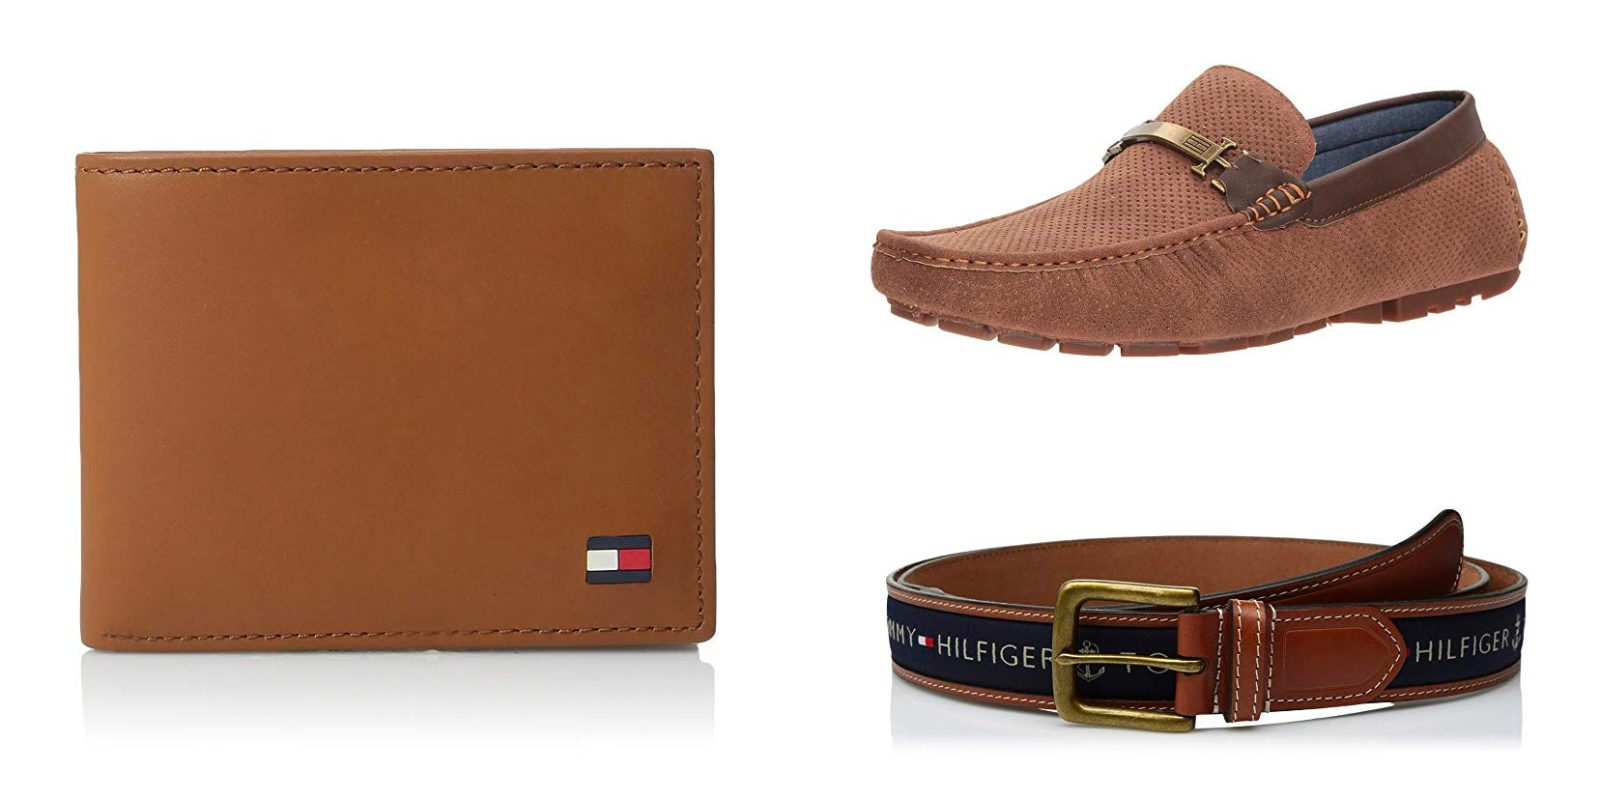 Amazon offers Tommy Hilfiger shoes, wallets, bags and more up to 30% off